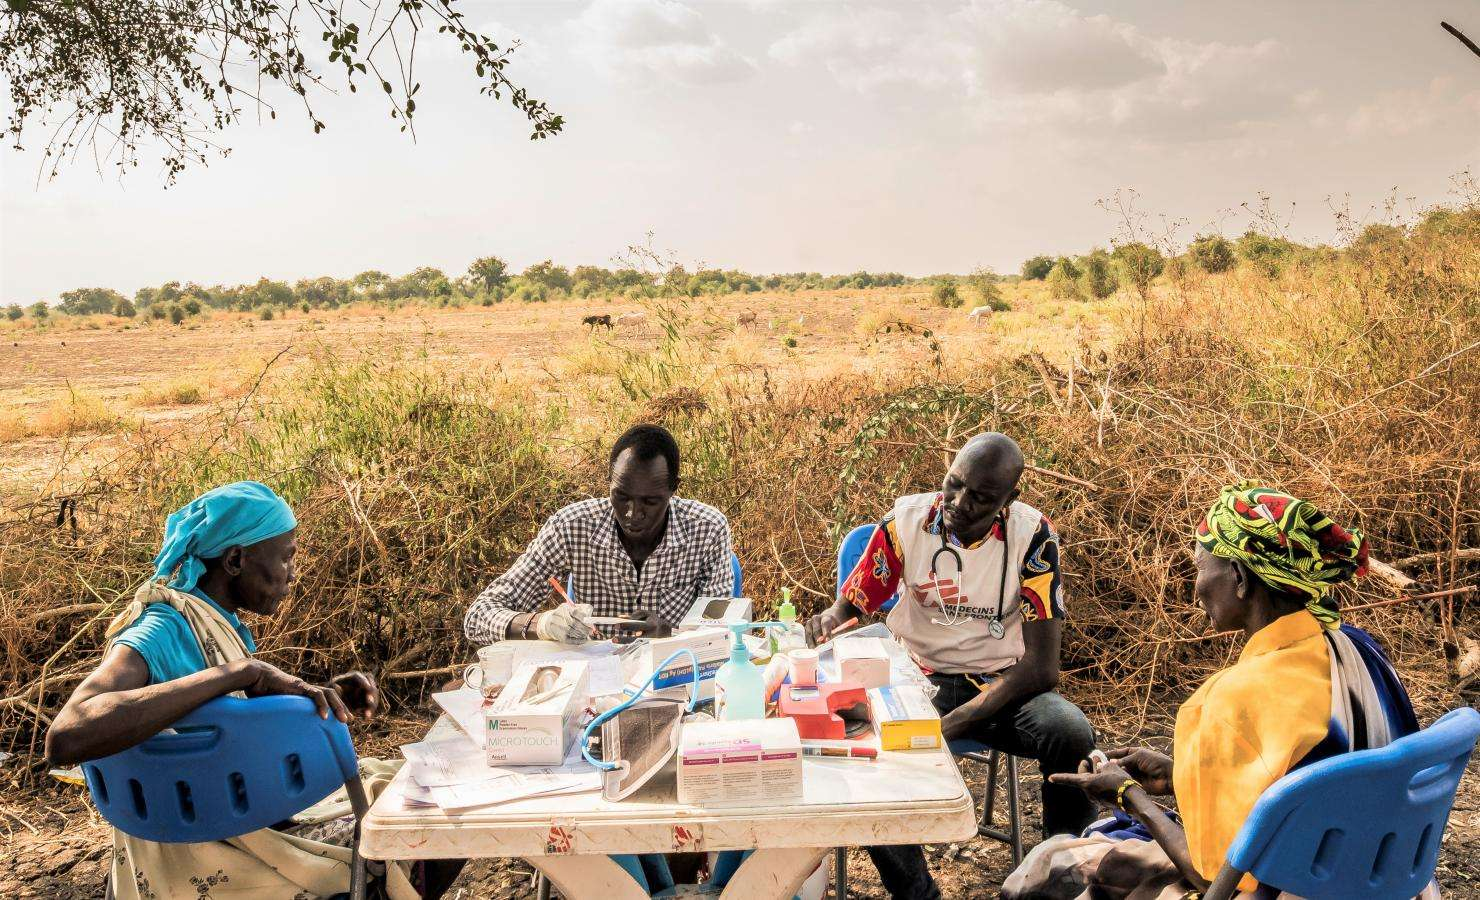 In the shade of a tree, mobile medical staff provide health consultations. Once per week, MSF sets up its medical clinic under trees in the village of Kier, on the banks of the Pibor River.